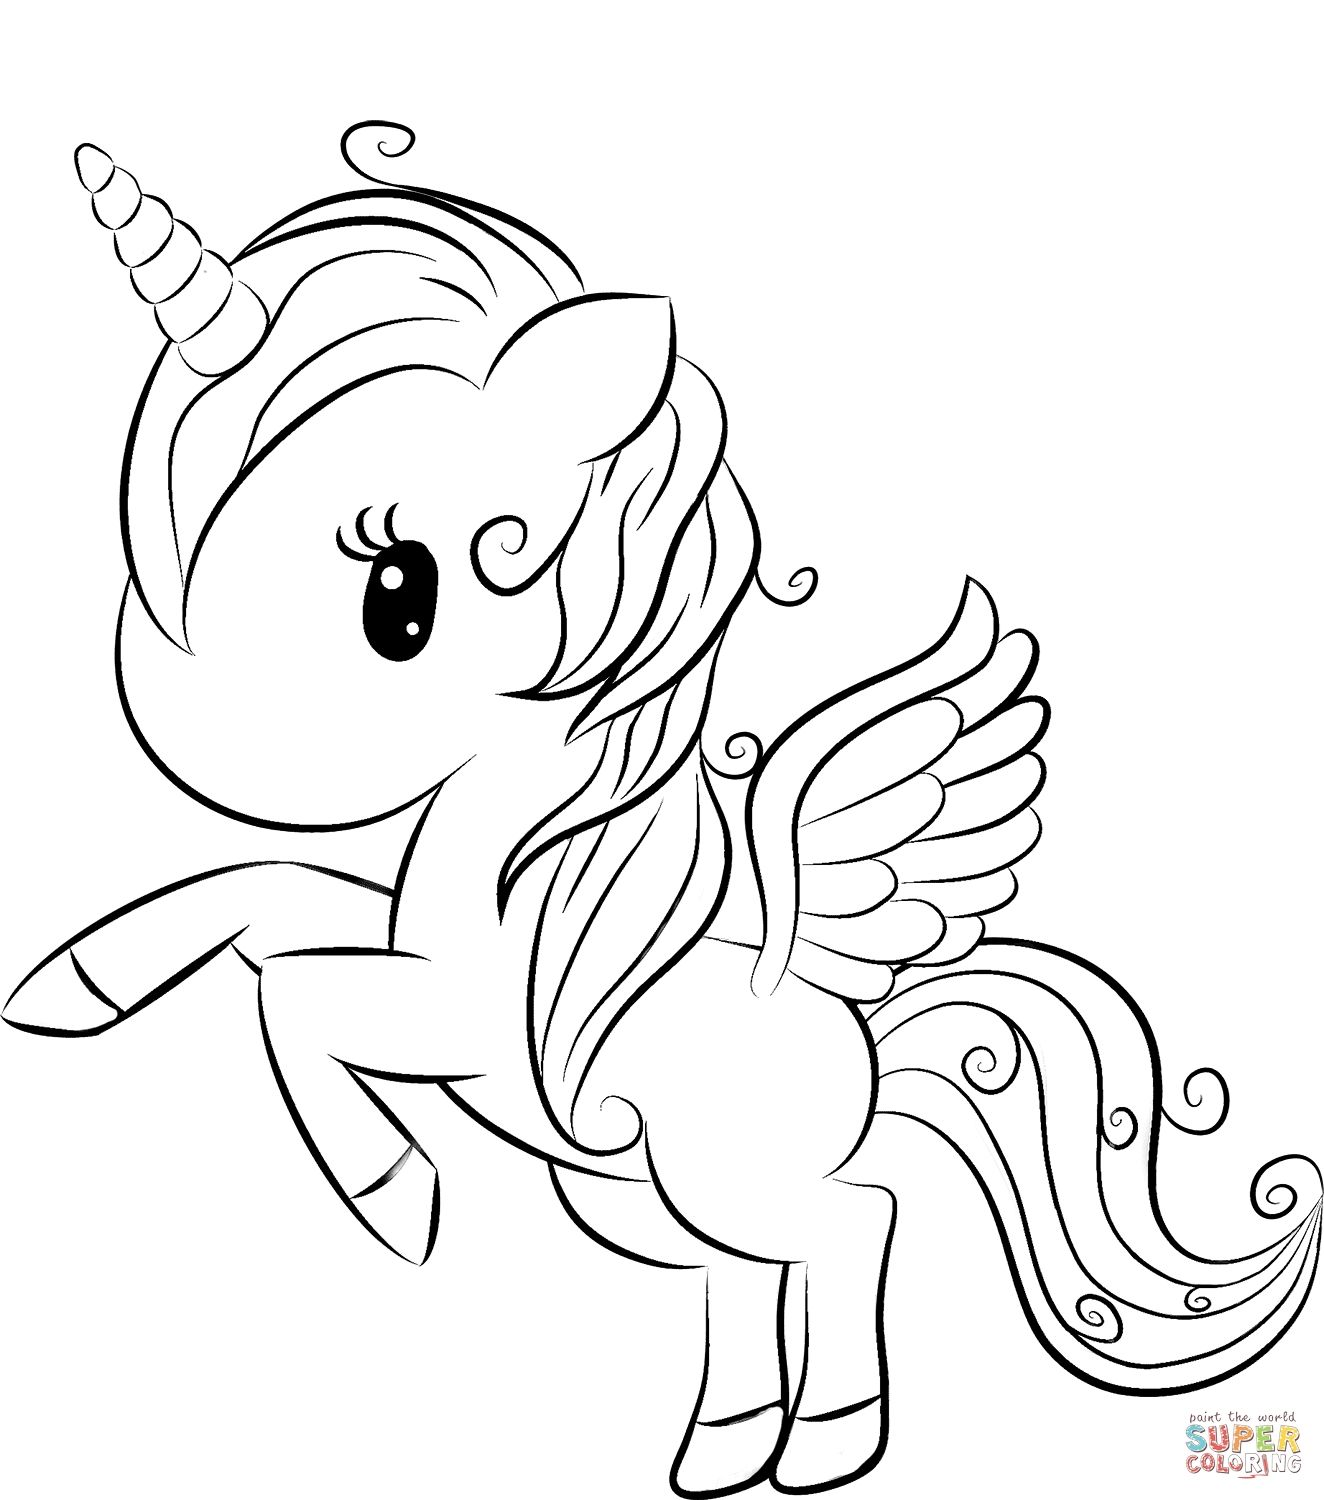 Unicorn Coloring Pages Free Printable Cute Coloring Pages